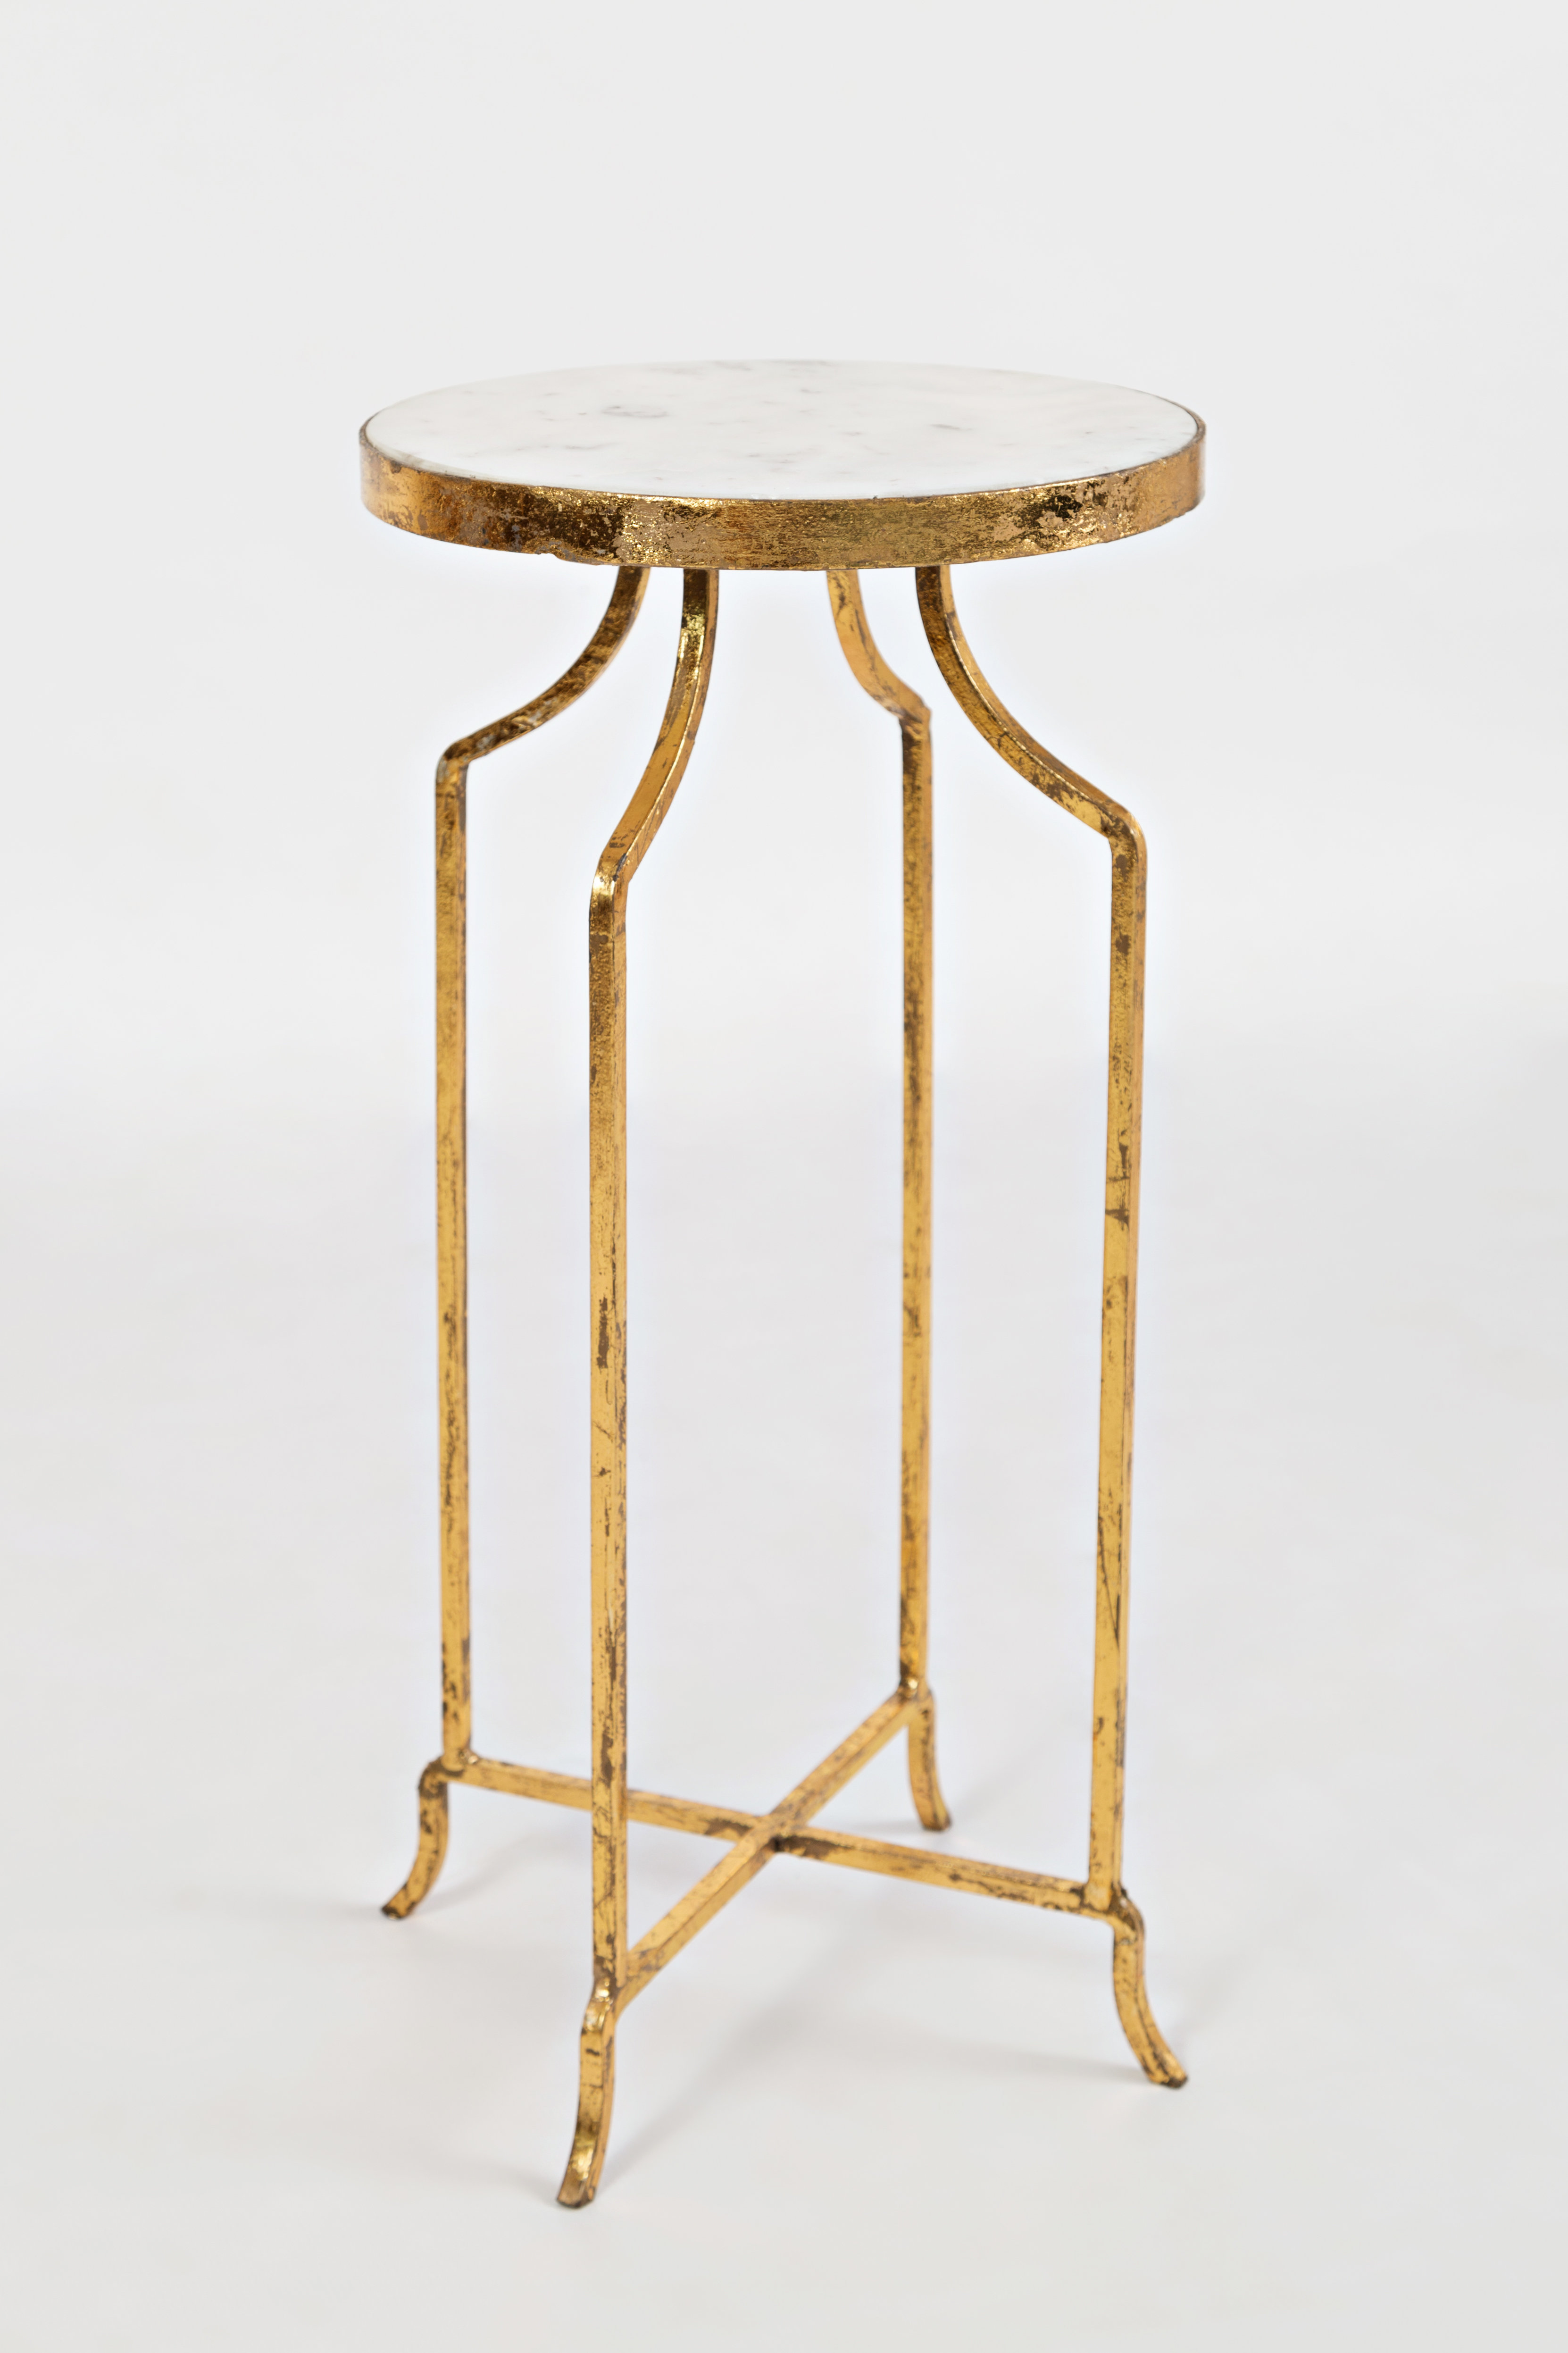 small end tables you love callimont marble table patchen accent round vinyl tablecloth outdoor storage buffet collections winsome wood timber night stand ikea garden living room